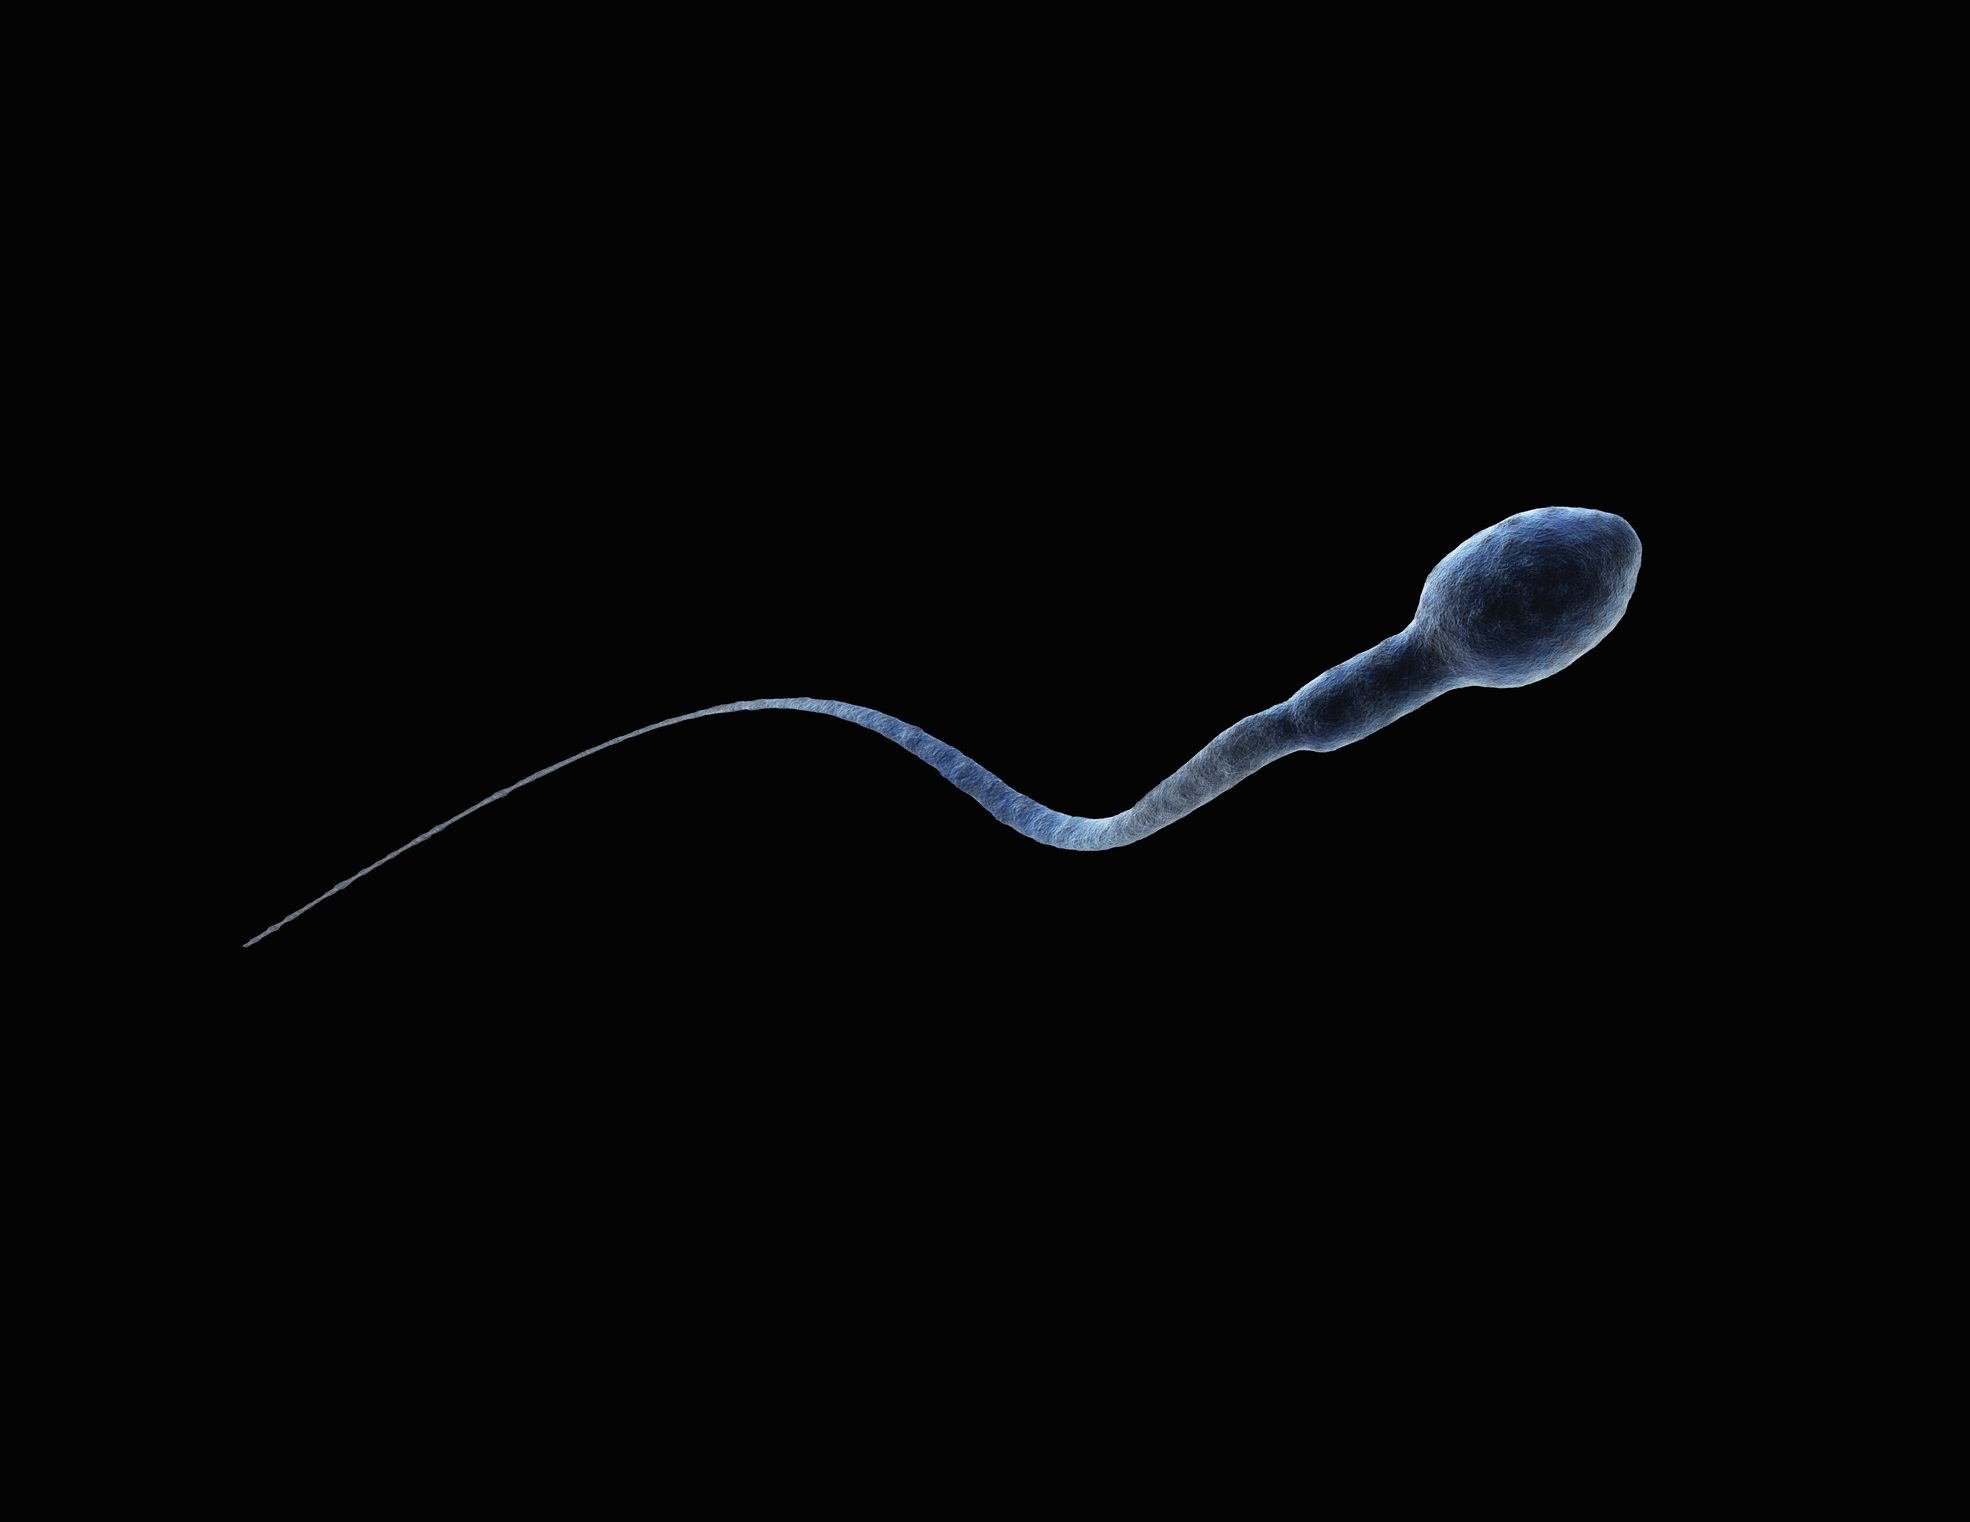 sperm cell on black background